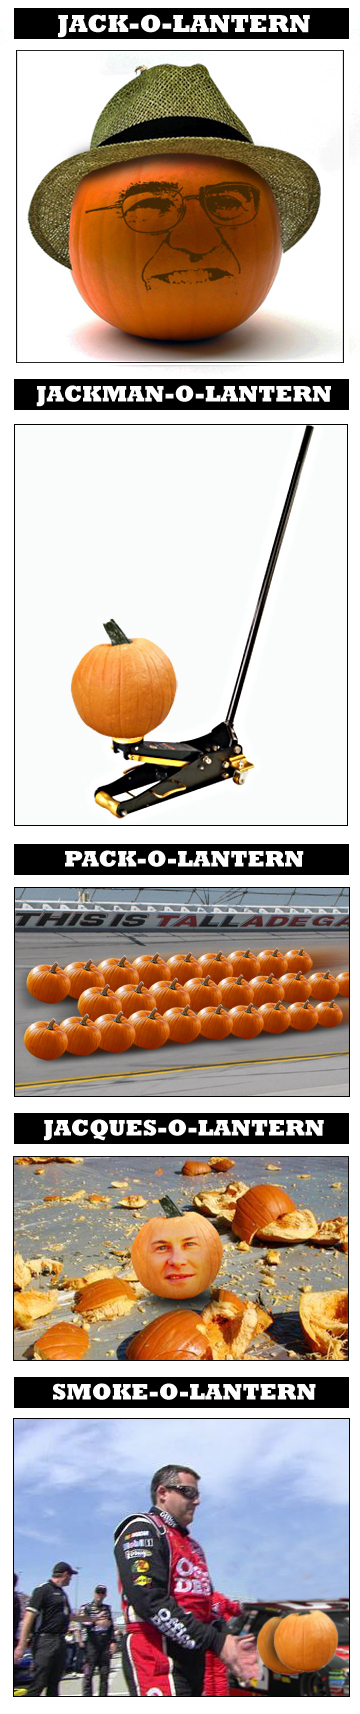 Jackolanterns_medium